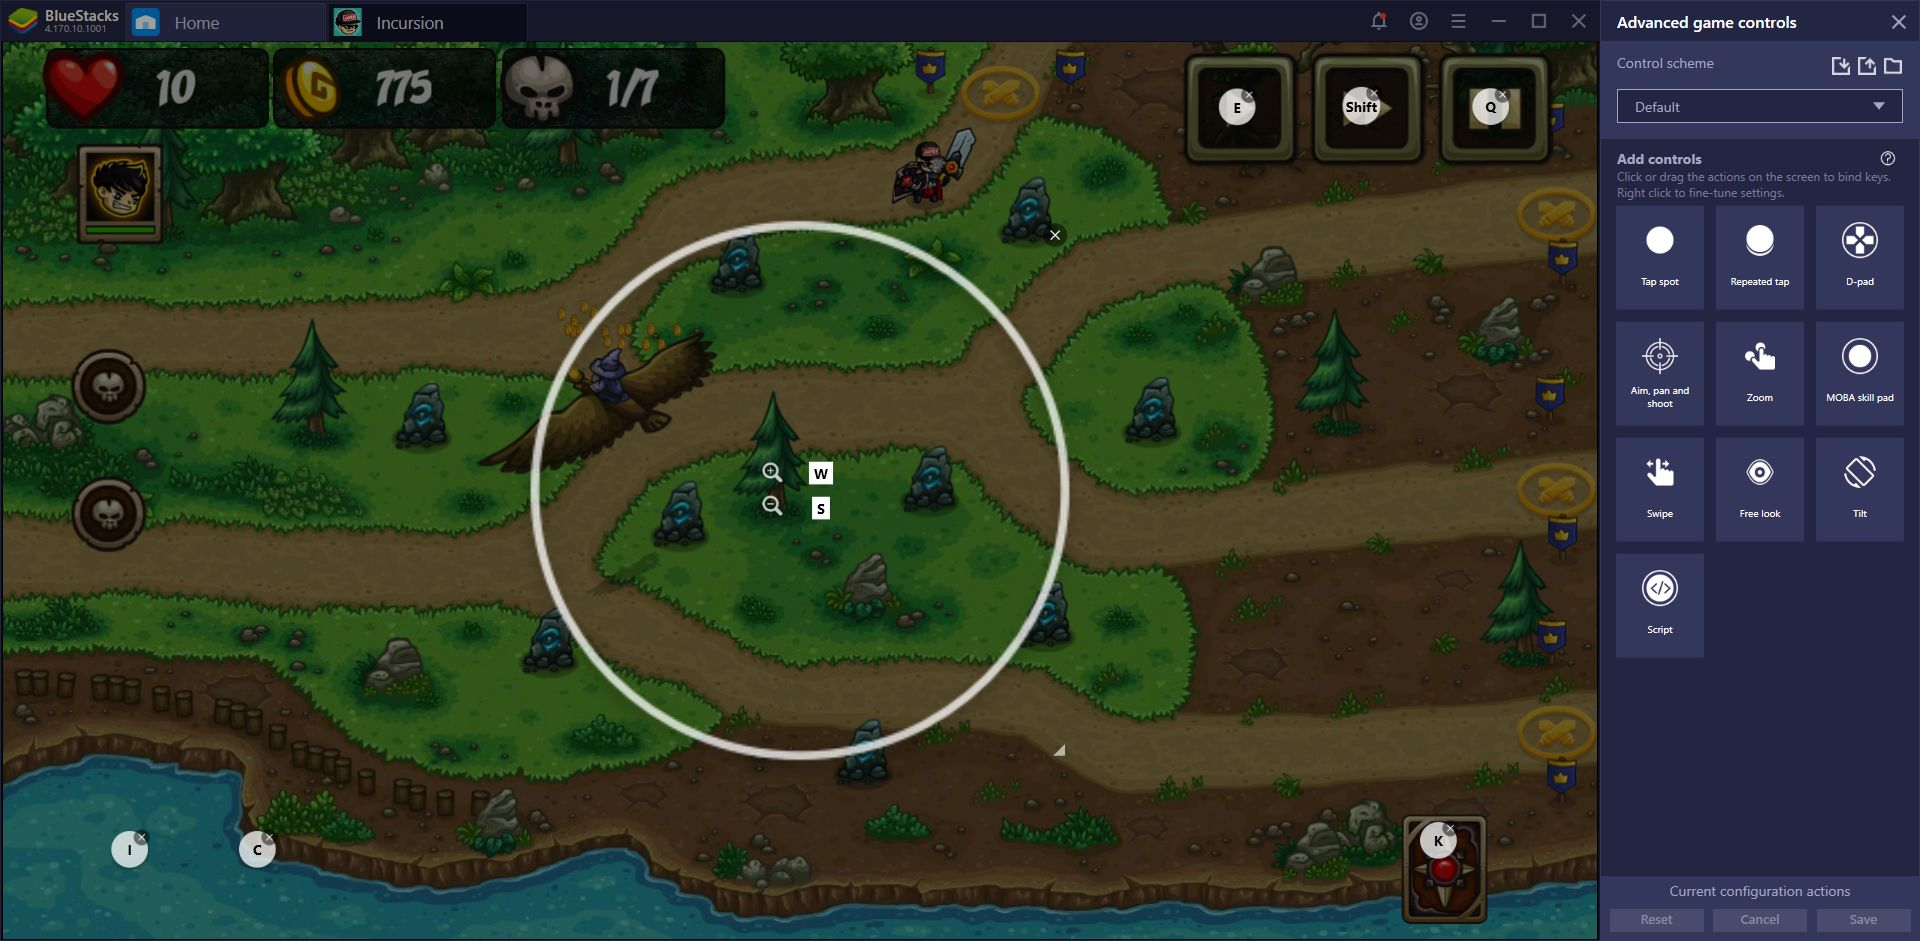 Incursion Defense on PC - How our BlueStacks Tools Can Improve Your Game